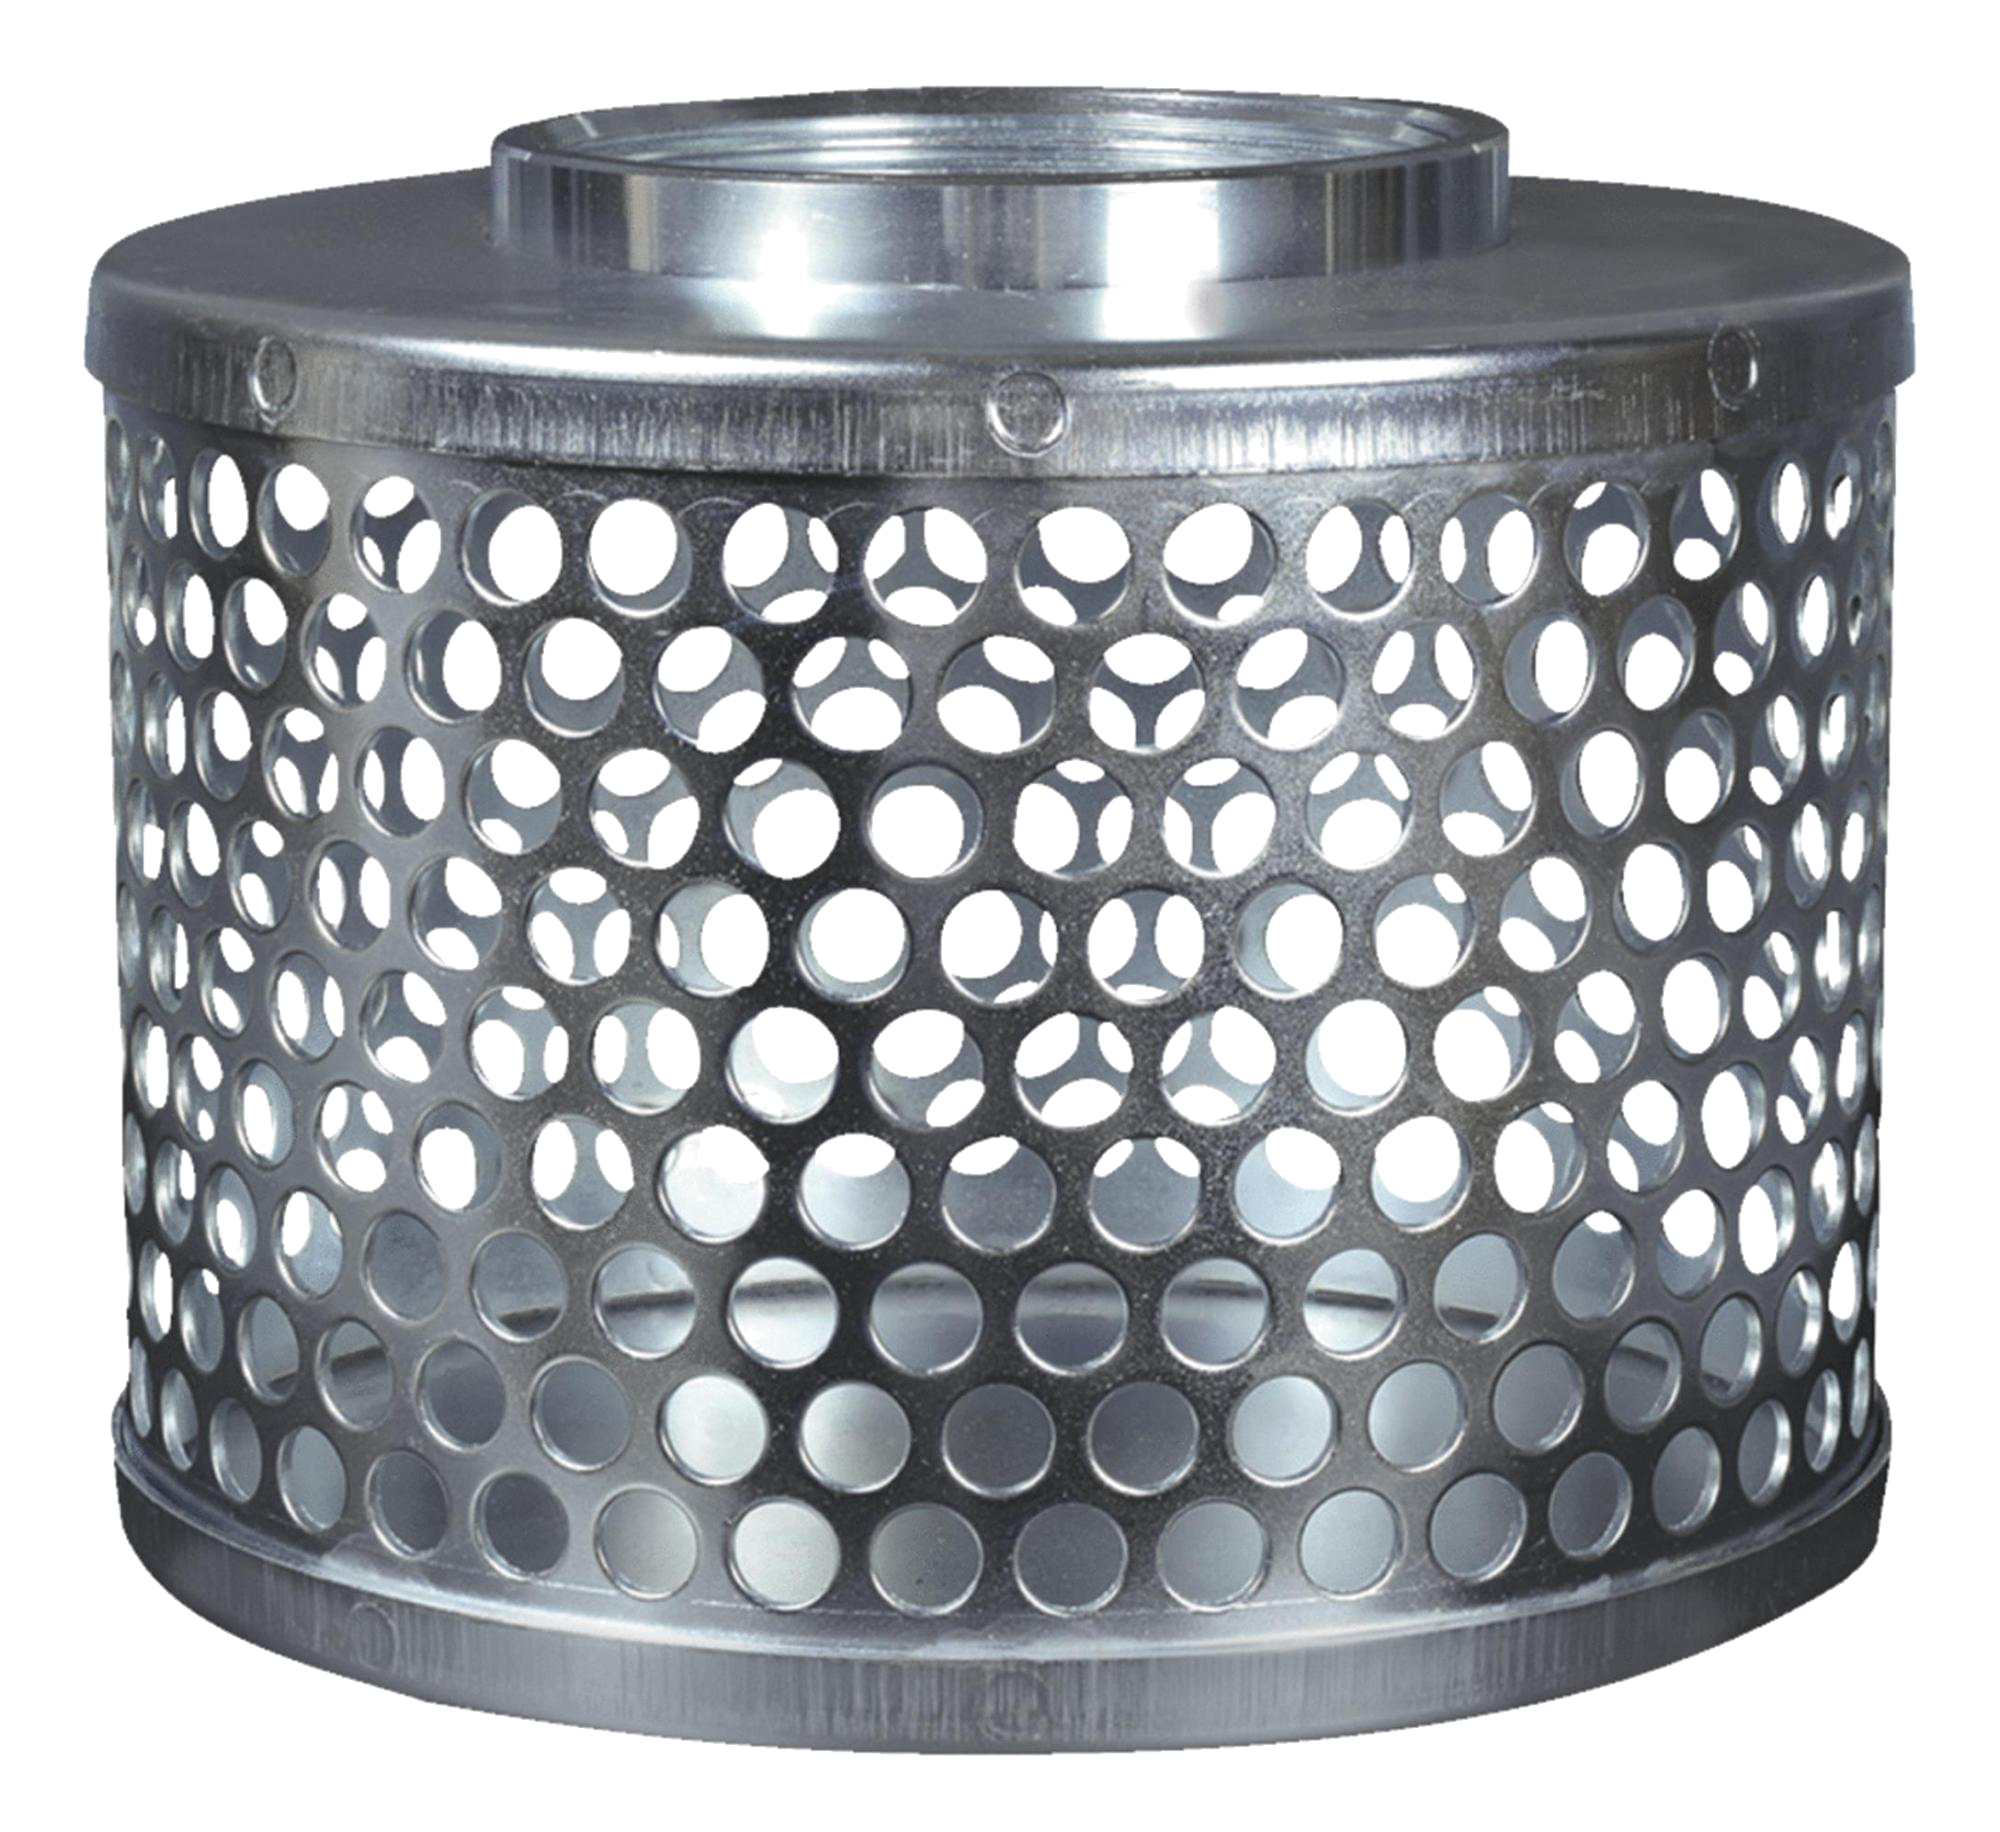 strainer new.png